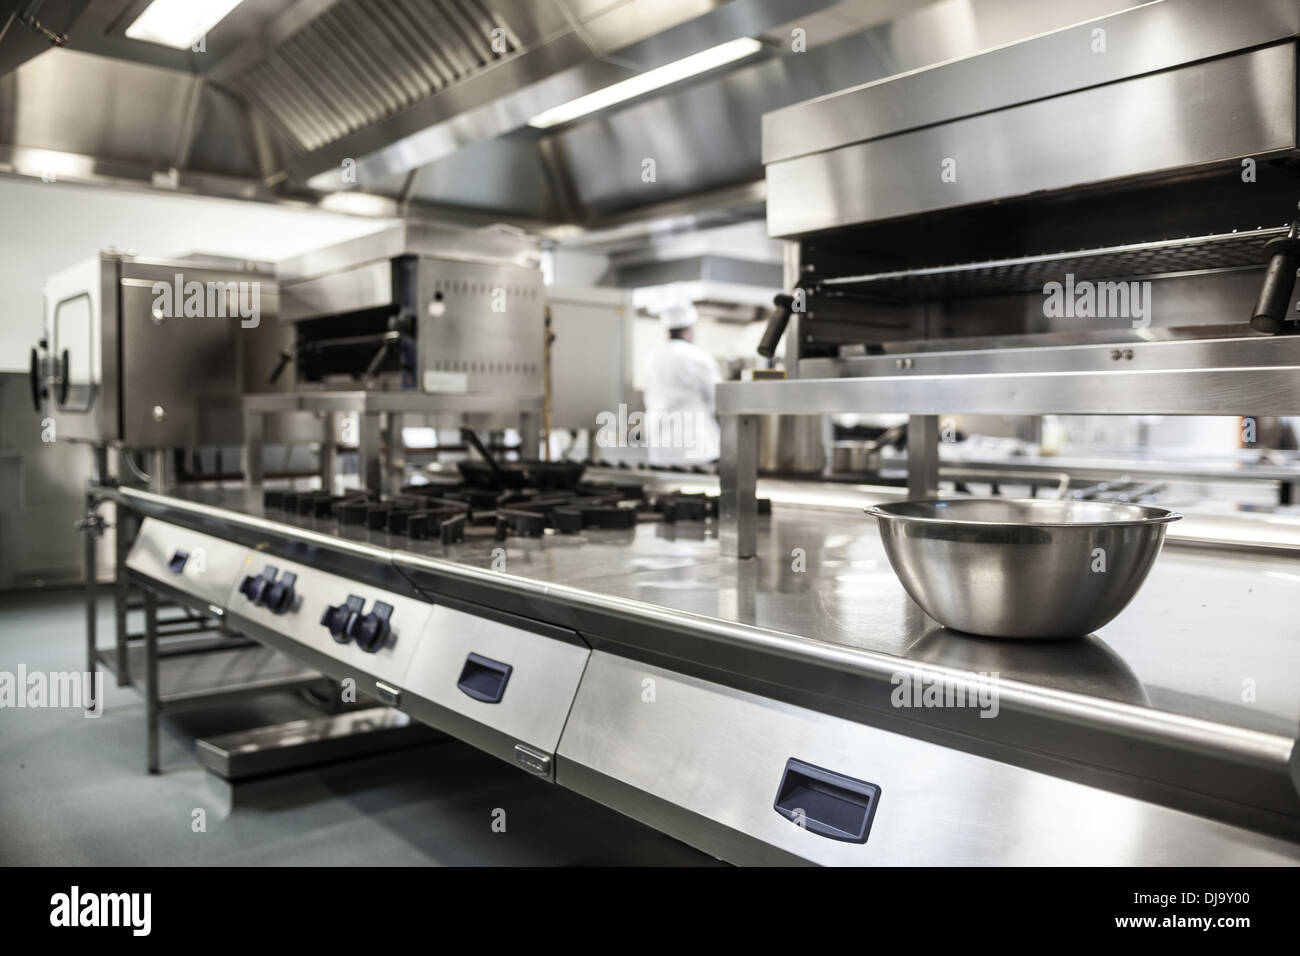 Work surface and kitchen equipment - Stock Image